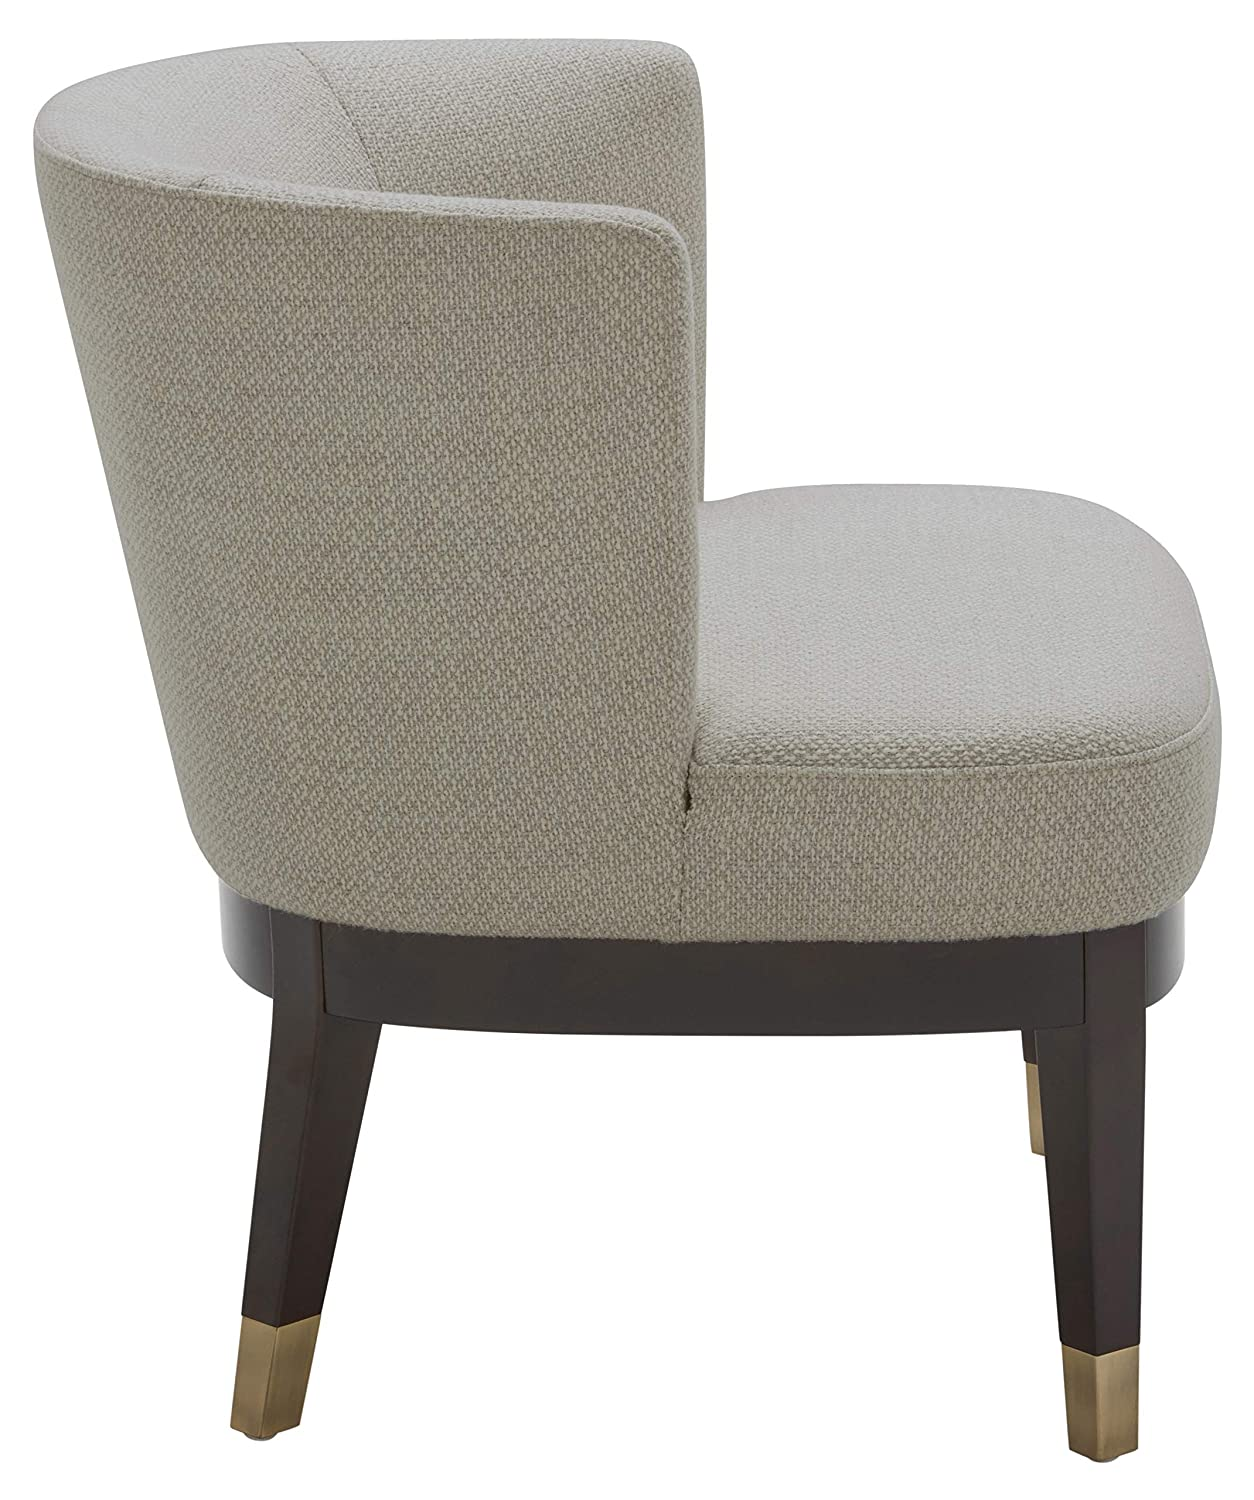 Super Rivet Stacey Mid Century Modern Round Backed Armless Living Room Chair 27W Stucco Creativecarmelina Interior Chair Design Creativecarmelinacom